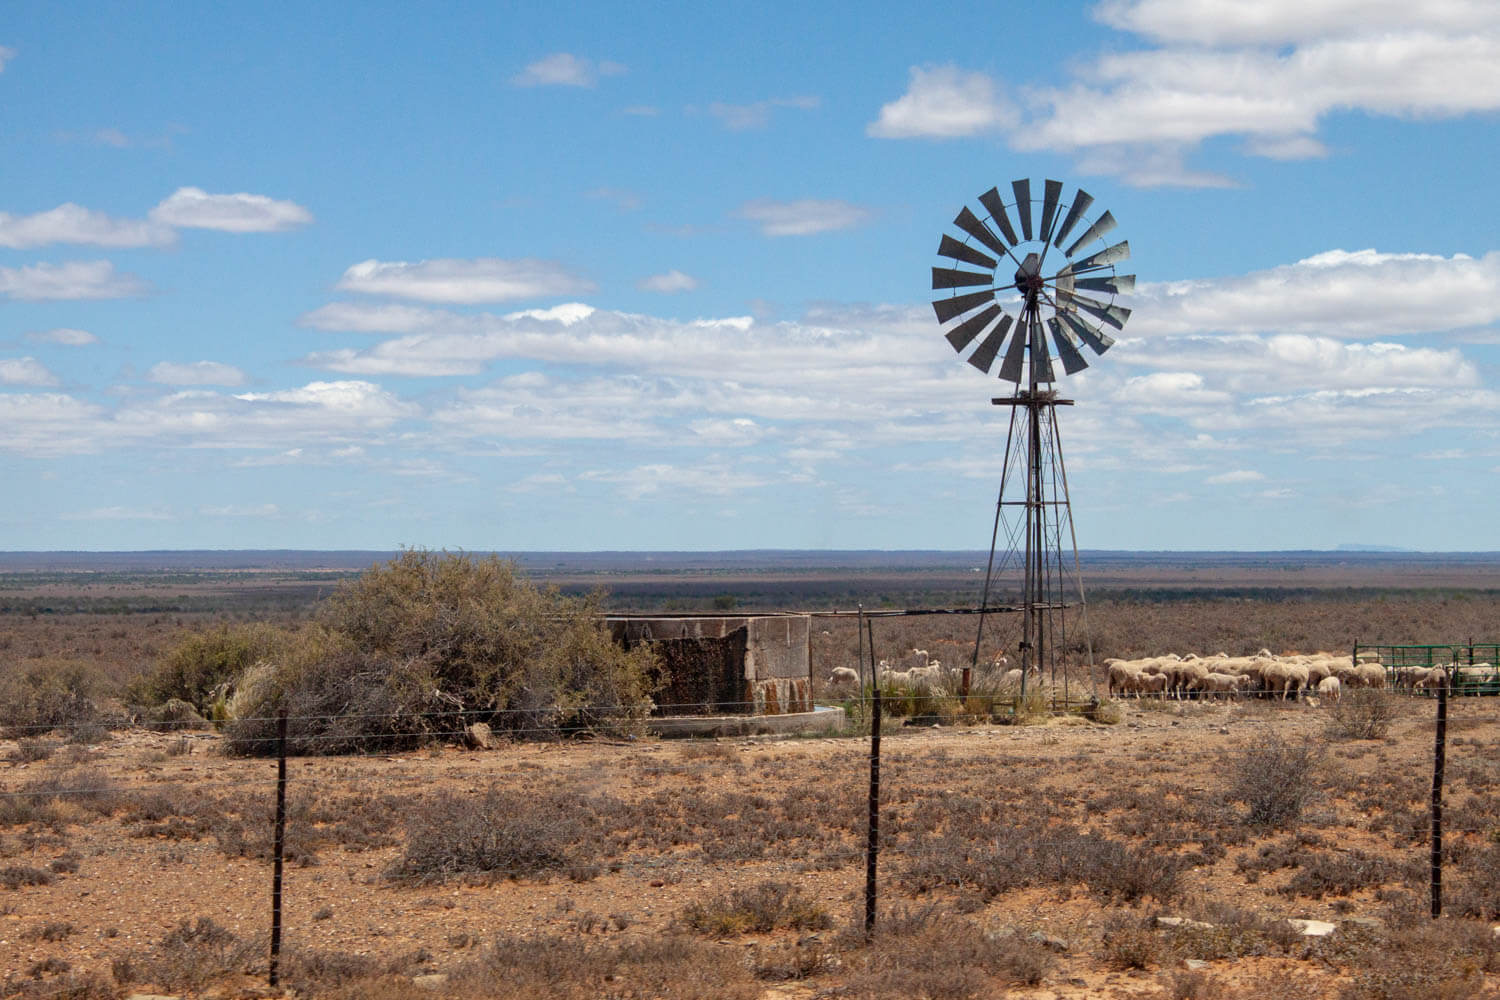 Karoo desert with sheep and windmill